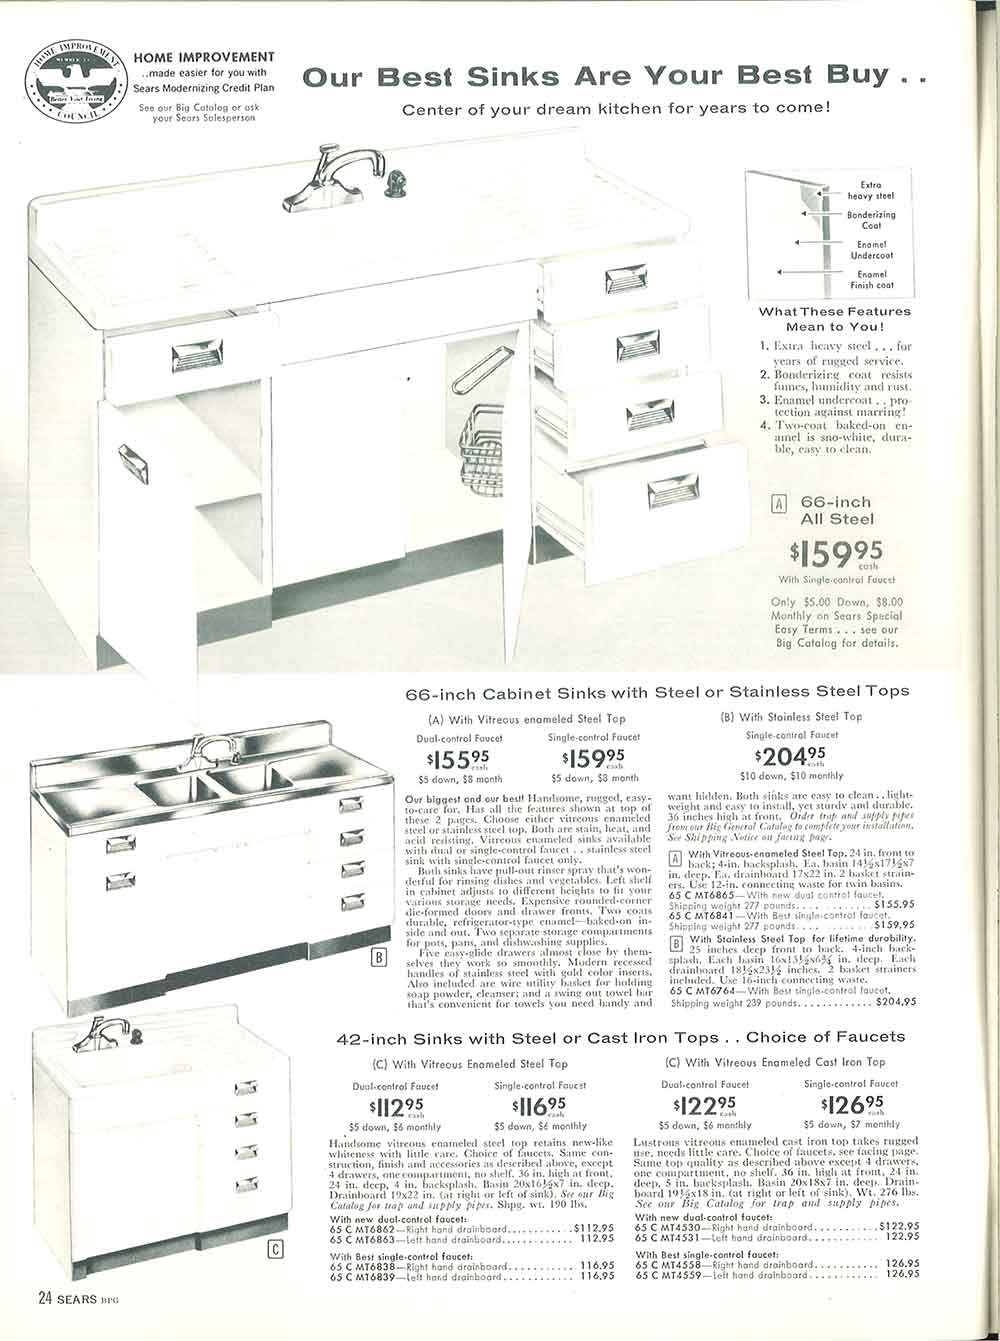 1958 sears kitchen cabinets and more - 32 page catalog - retro